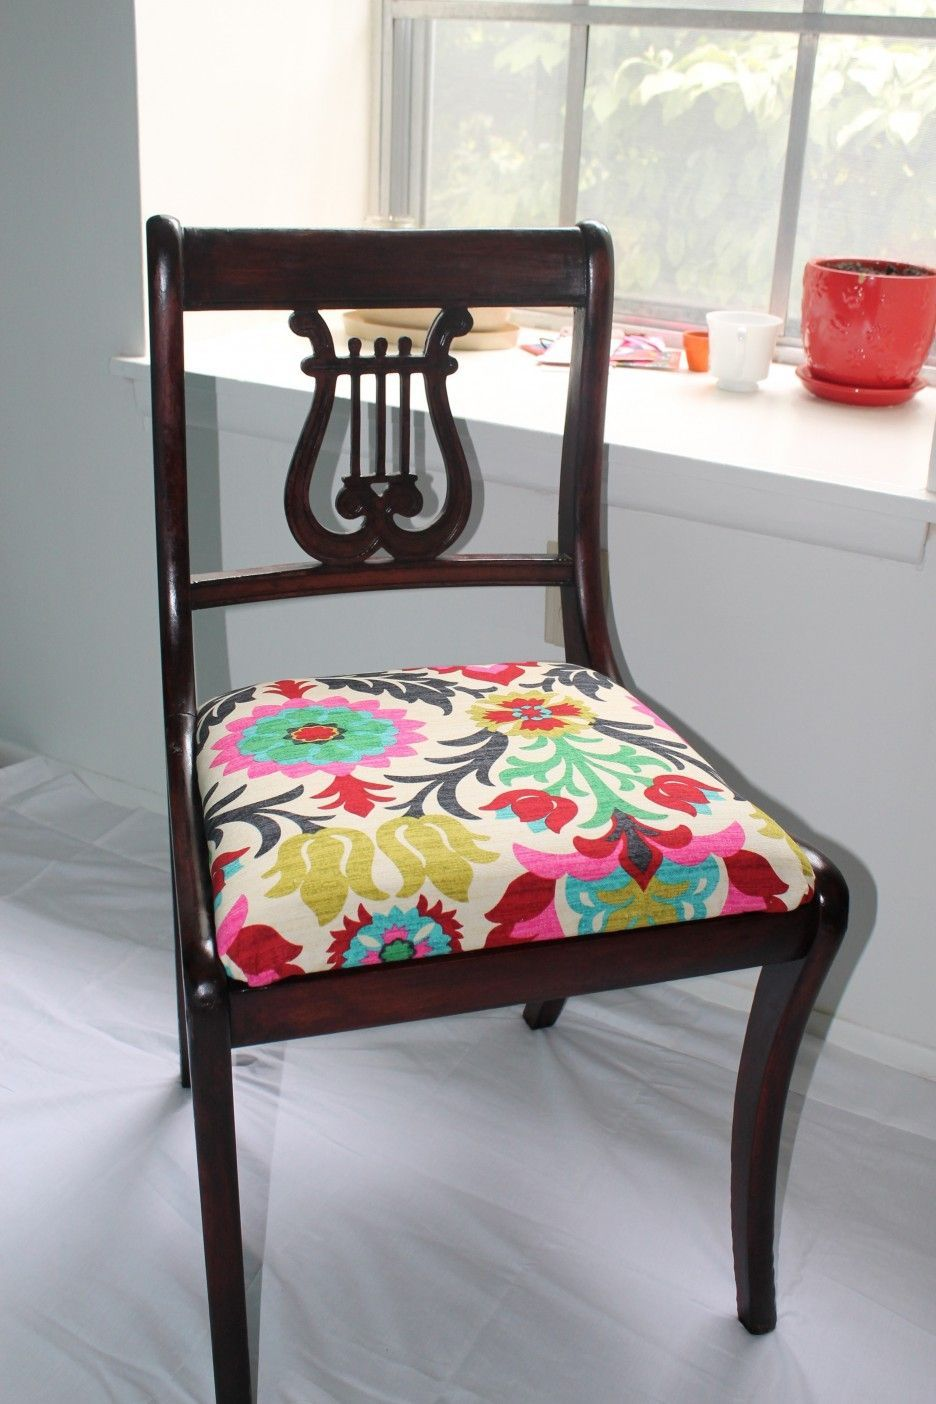 How Much Does A Chair Cost Bamboo Rocking It To Reupholster With Wooden Material And Cozy Pattern Ideas